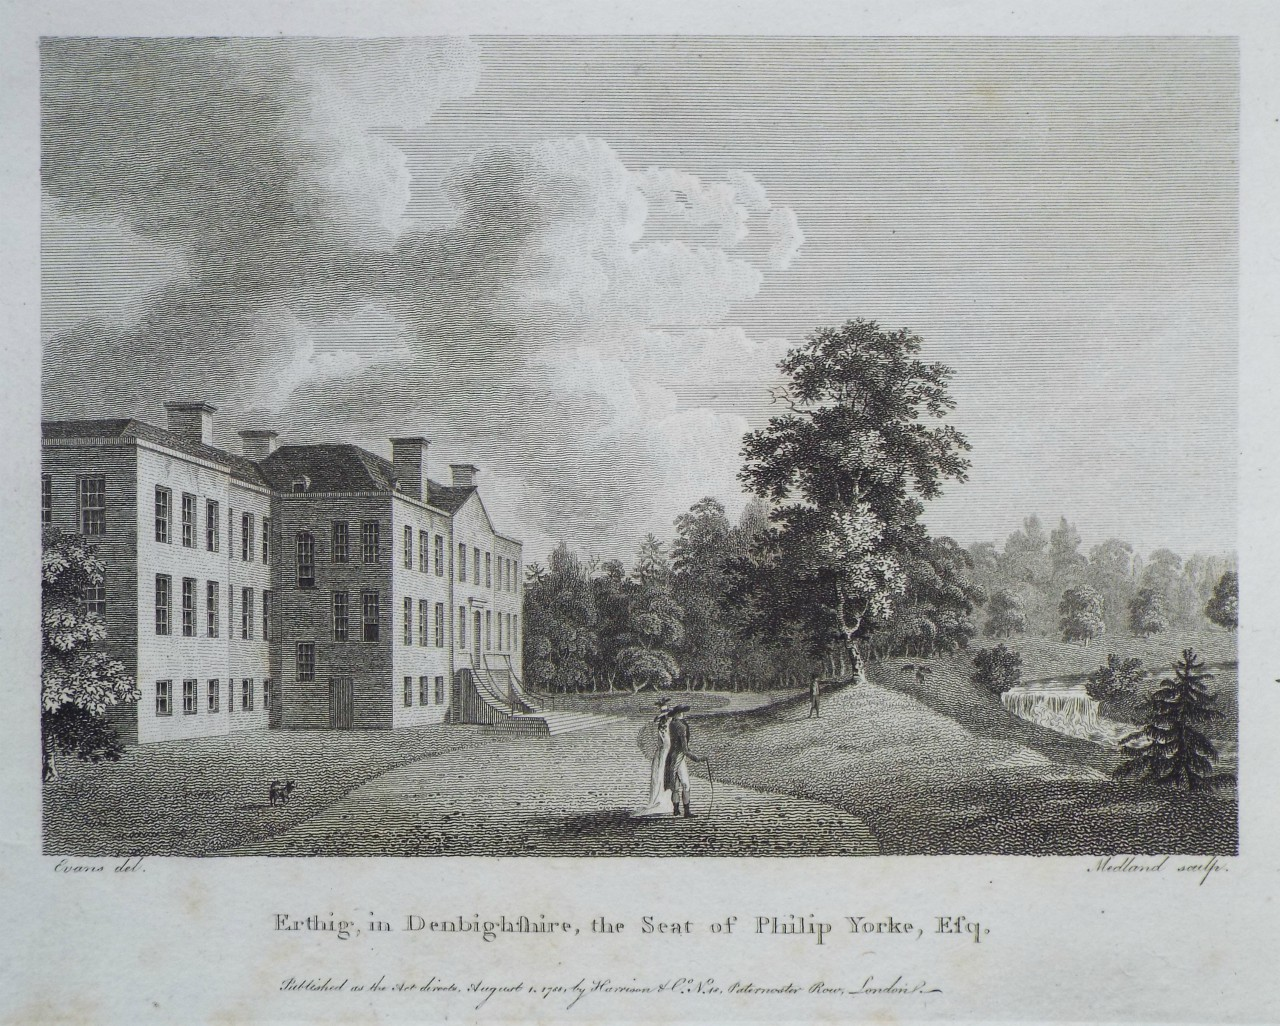 Print - Erthig, in Denbighshire, the Seat of Philip Yorke, Esq. -